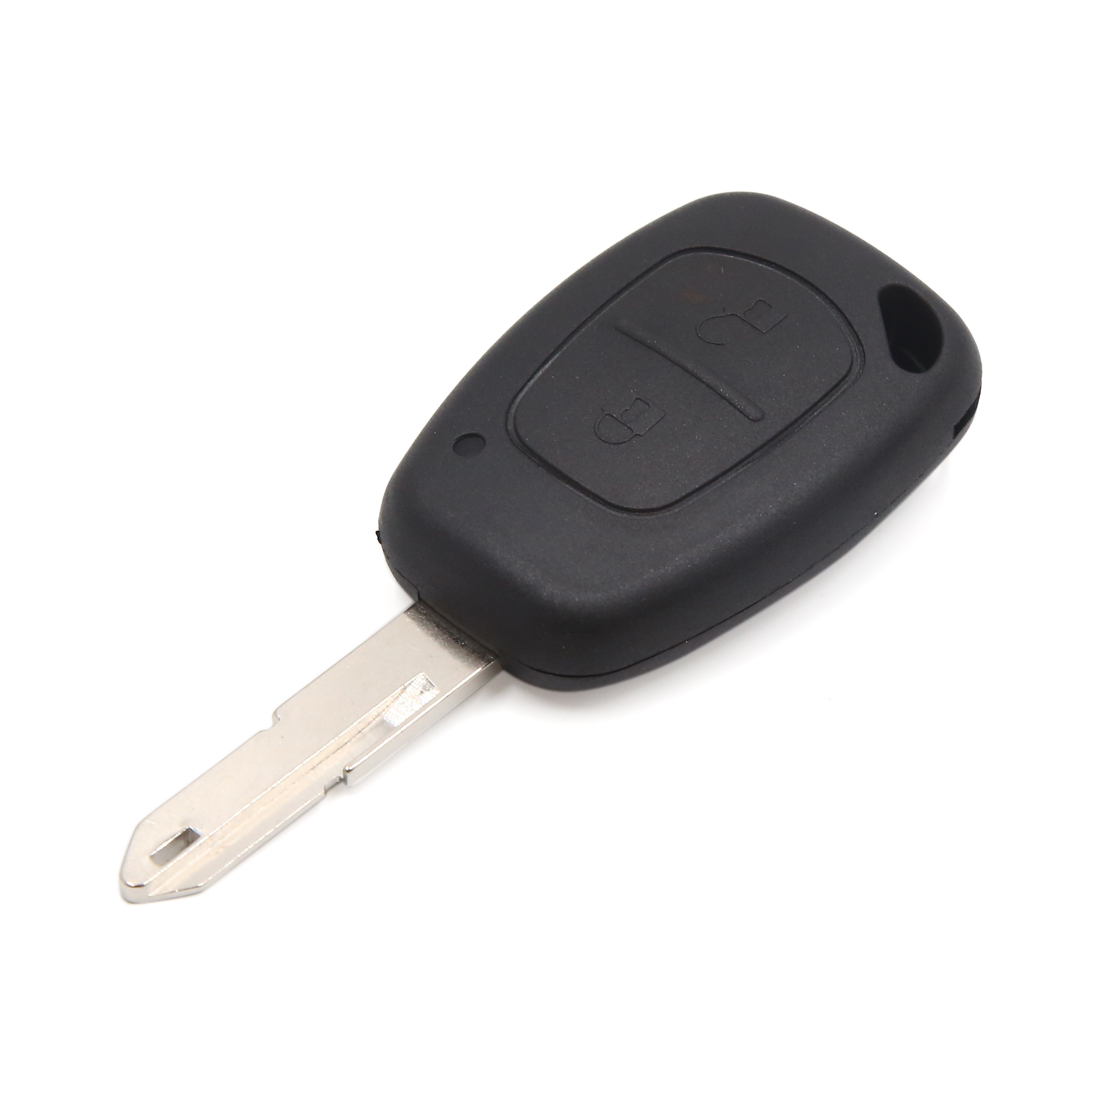 Black 2 Buttons Uncut Key Car Remote Fob Control Case Clicker Shell for Renault